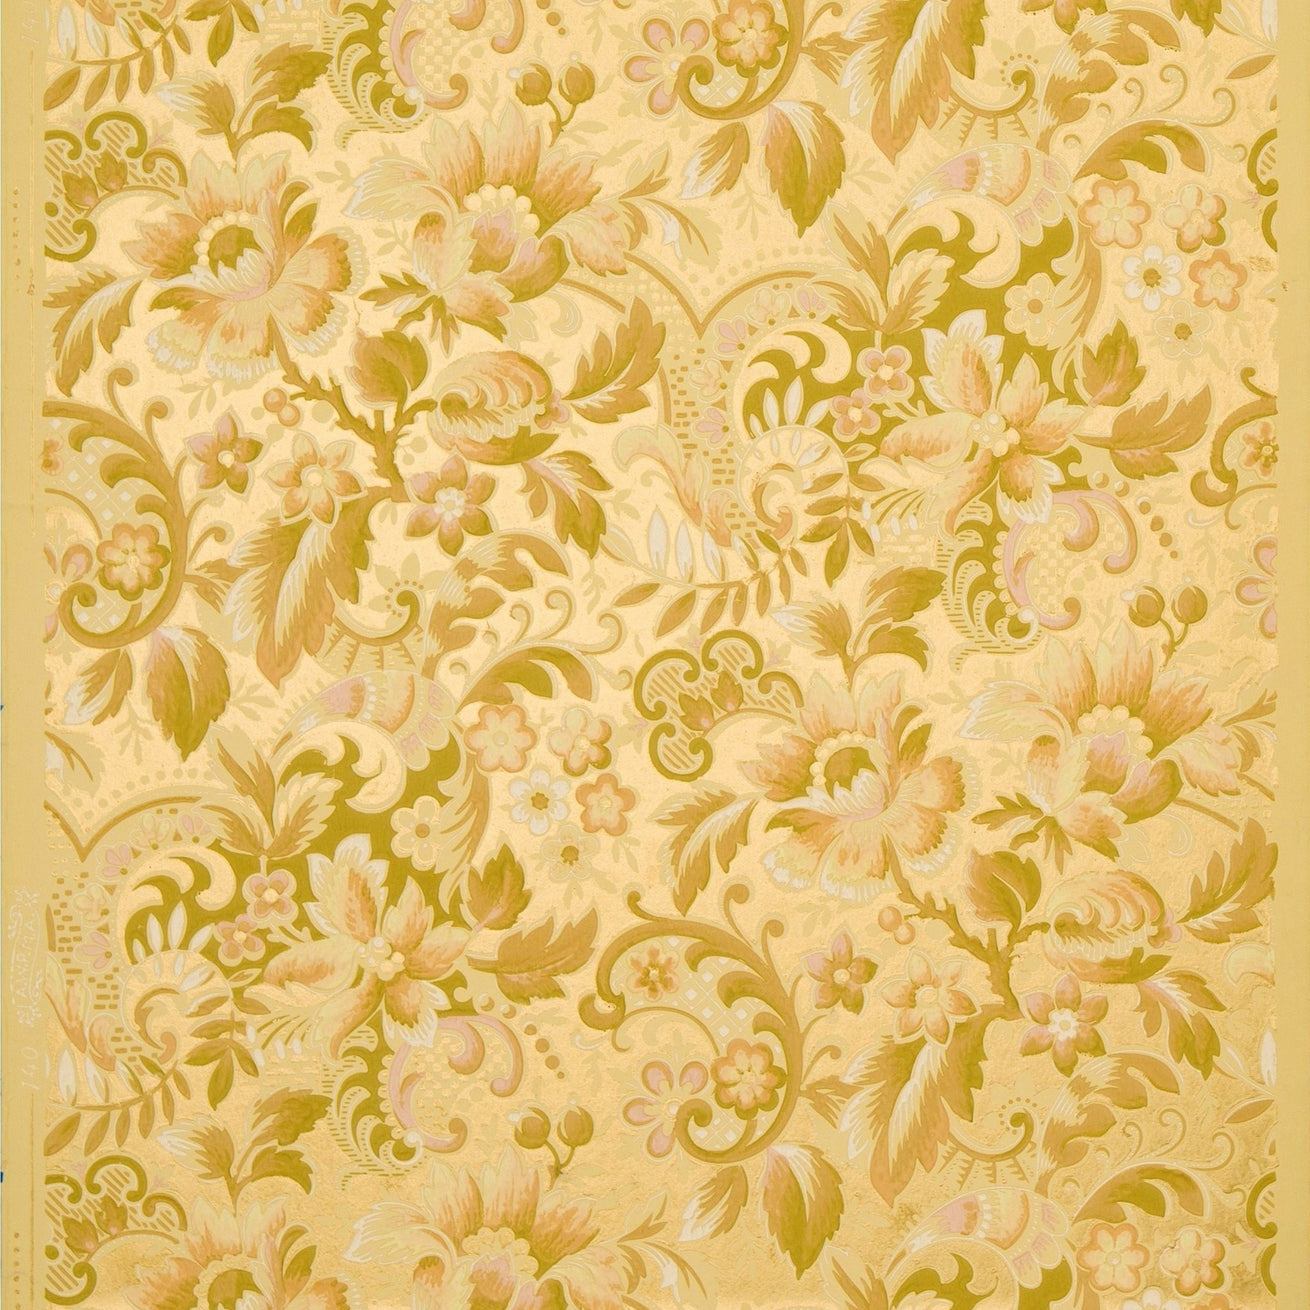 Pale All-Over Floral Foliate - Antique Wallpaper Remnant